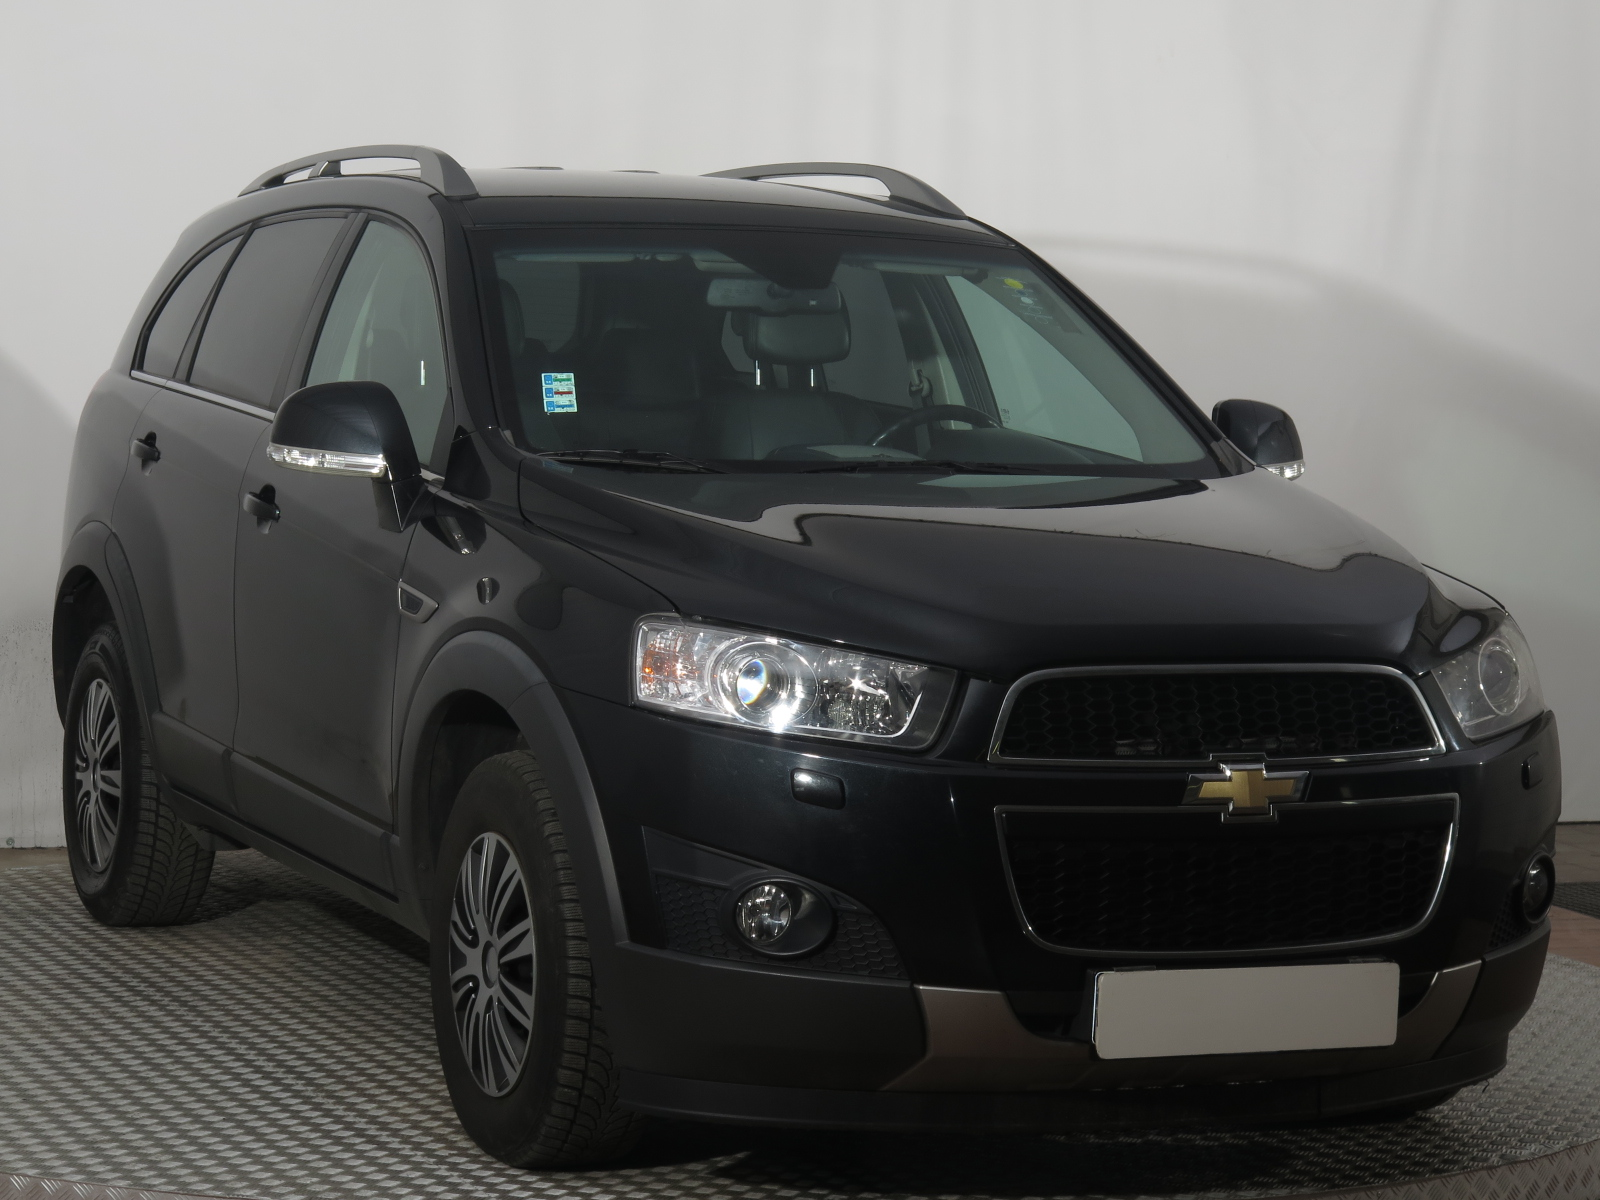 cote auto gratuite chevrolet captiva 2 0 vcdi lt pack 2006 9 cv 1099260. Black Bedroom Furniture Sets. Home Design Ideas